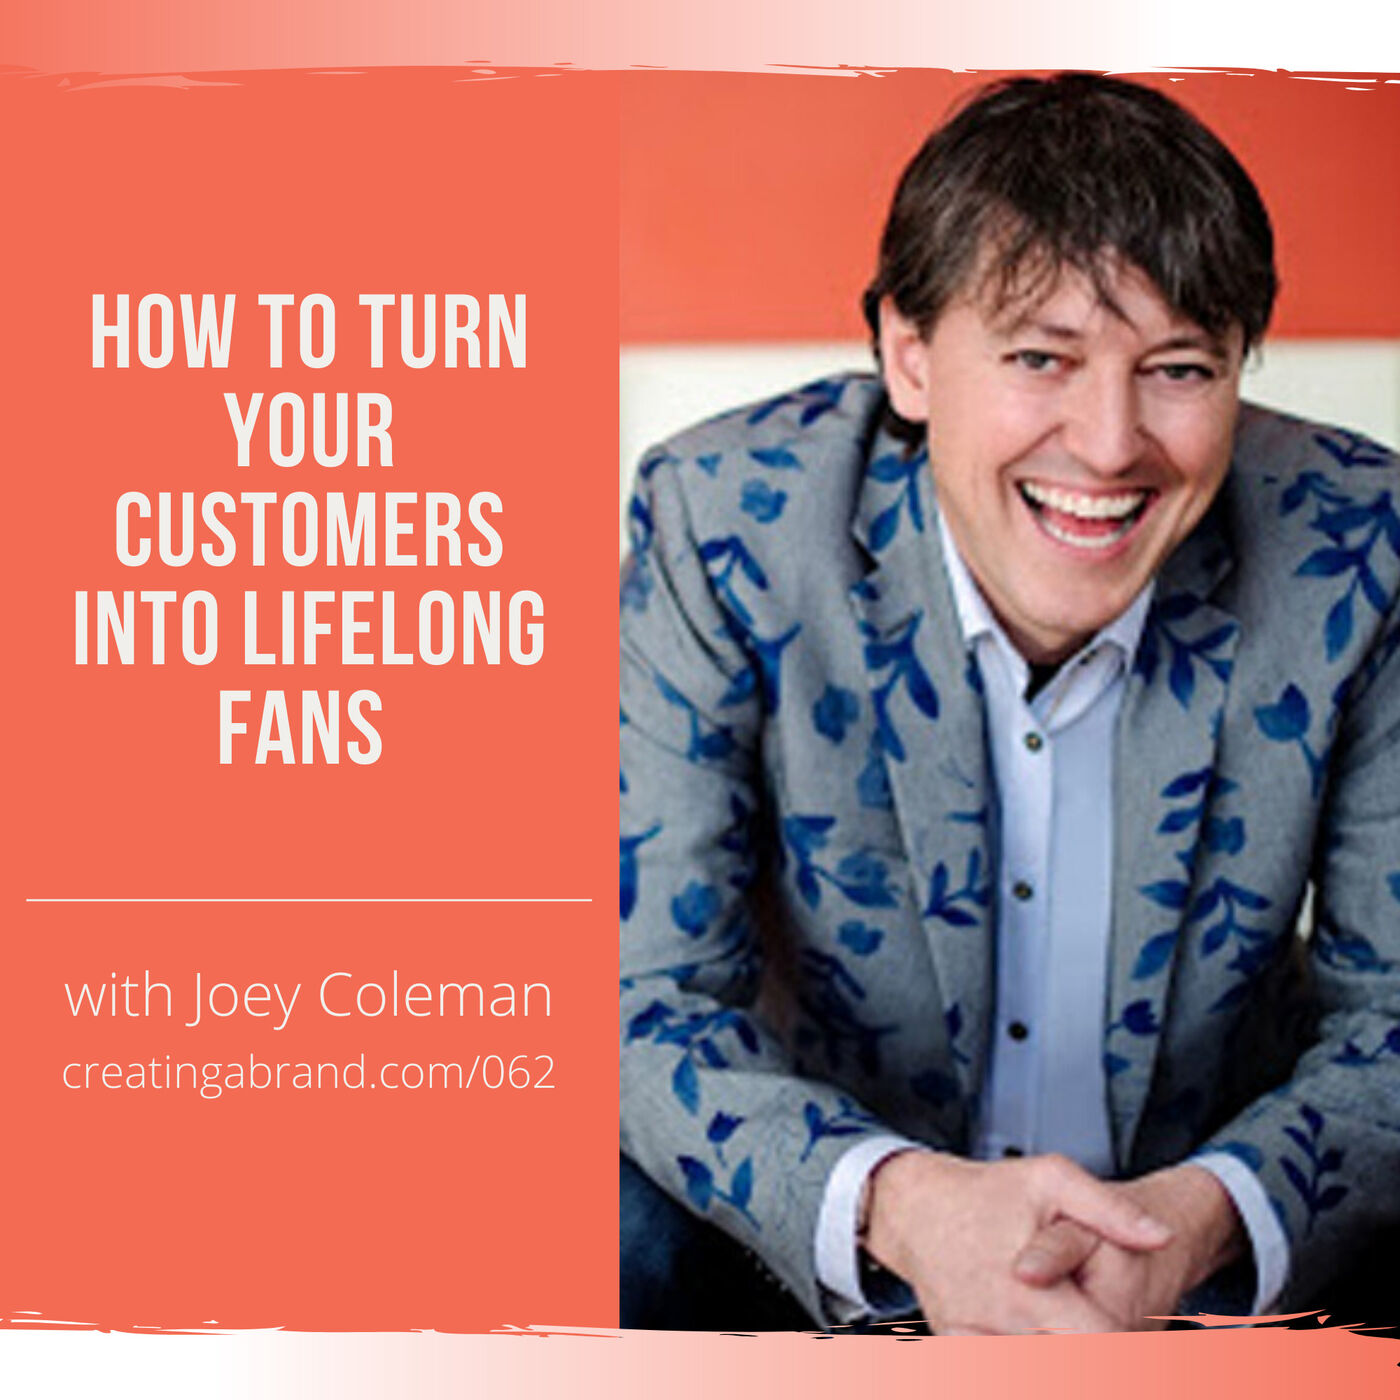 How to Turn Your Customers Into Lifelong Fans with Joey Coleman